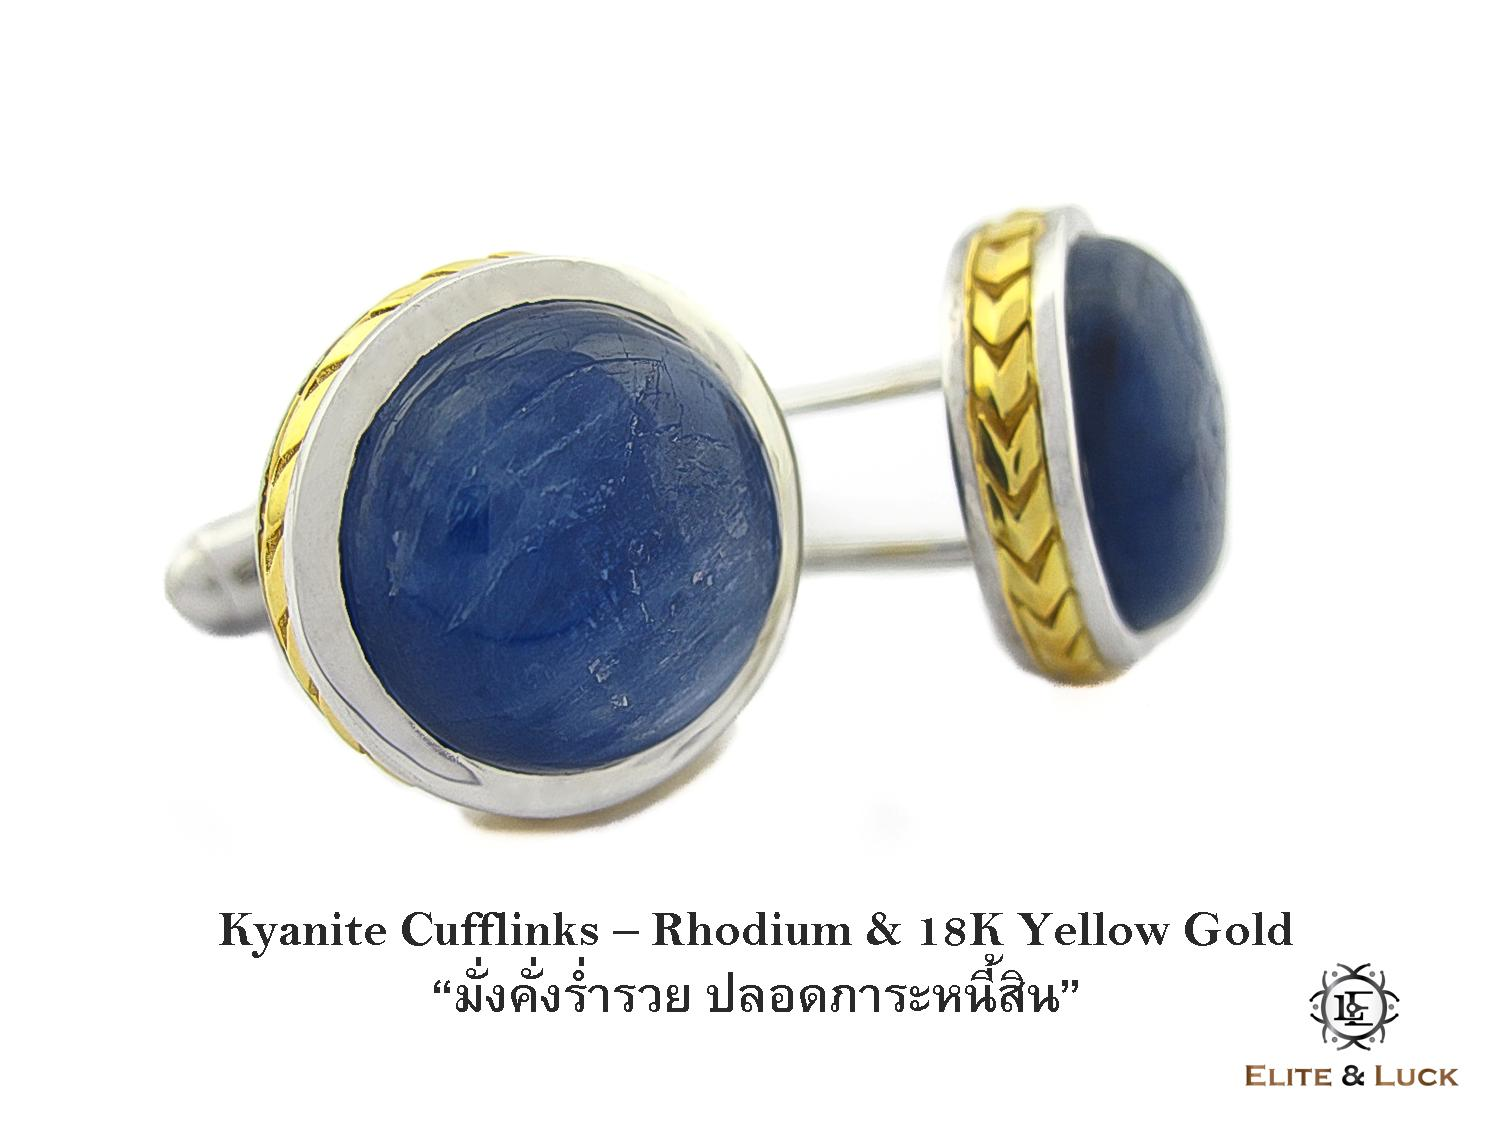 Kyanite Sterling Silver Cufflinks สี Rhodium & 18K Yellow Gold รุ่น Limited